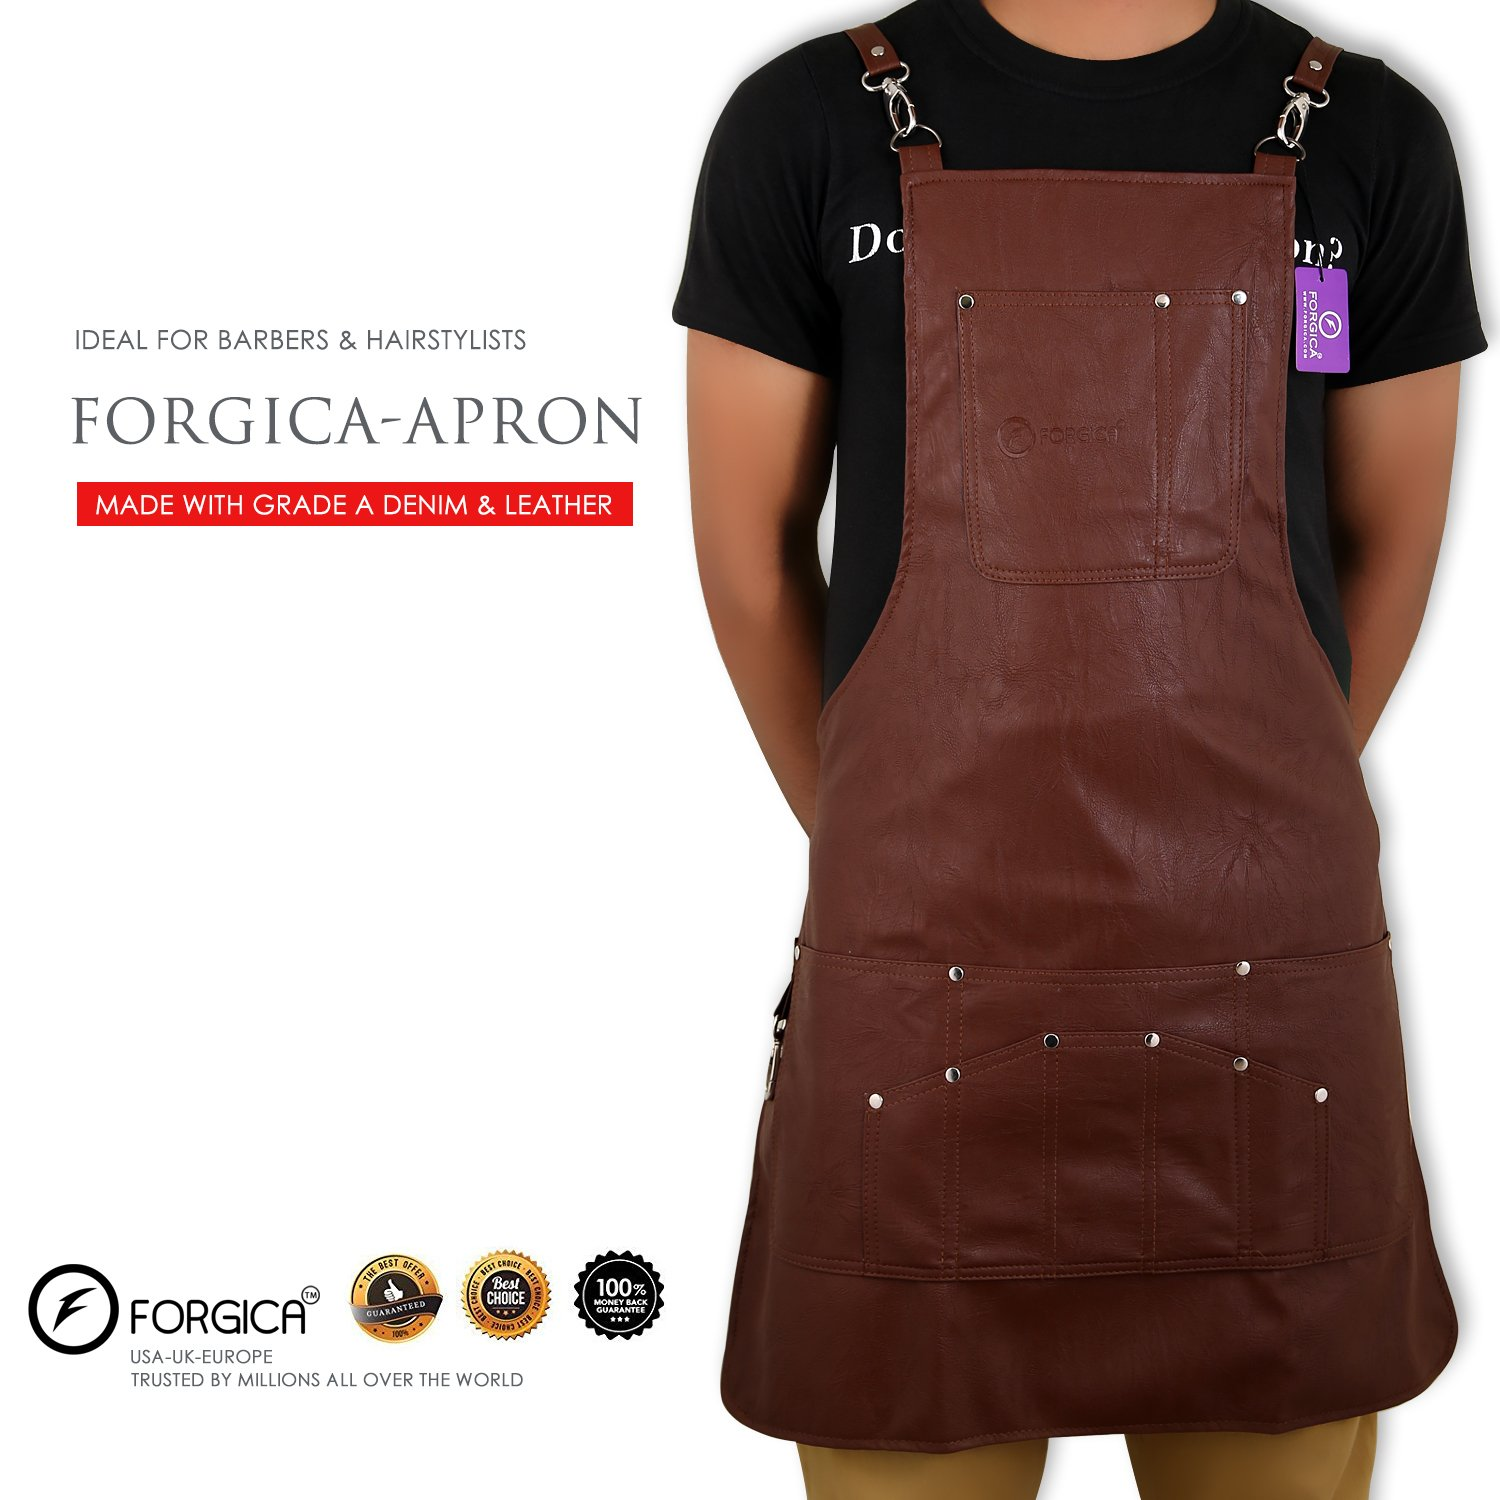 FORGICA Professional PU Leather Aprons For Men Hairdressing Barber Apron Cape for Salon Hairstylist - Multiuse, Adjustable with 8 pockets, Aprons For Women Heavy Duty work Carpenters, Hairdresser, by Forgica